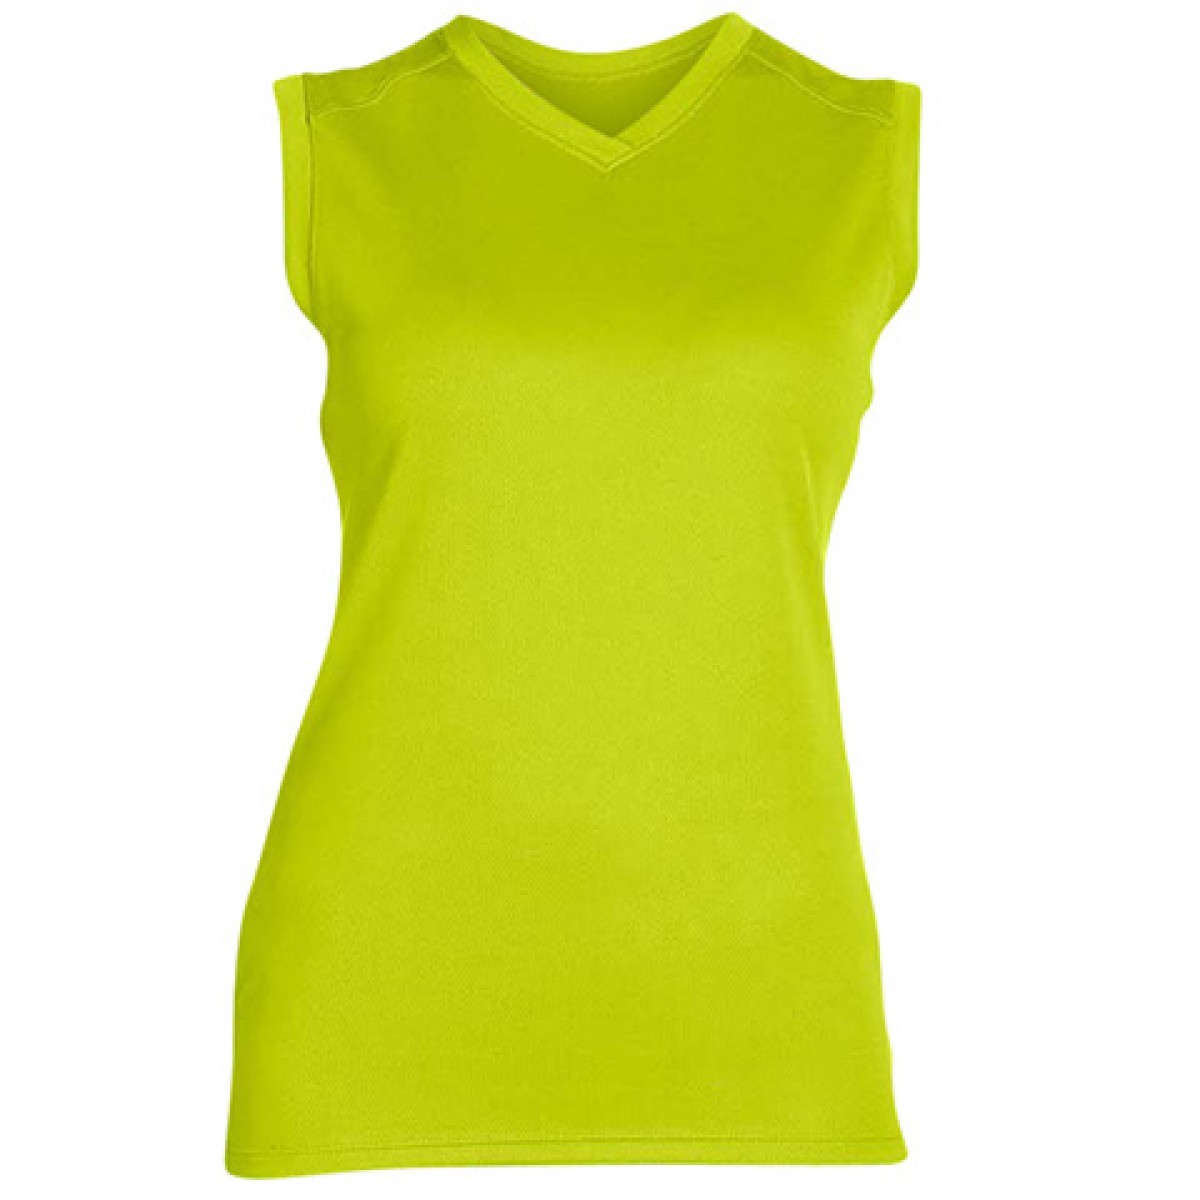 Ladies' Athletic V-Neck Workout T-Shirt-Neon Green-L